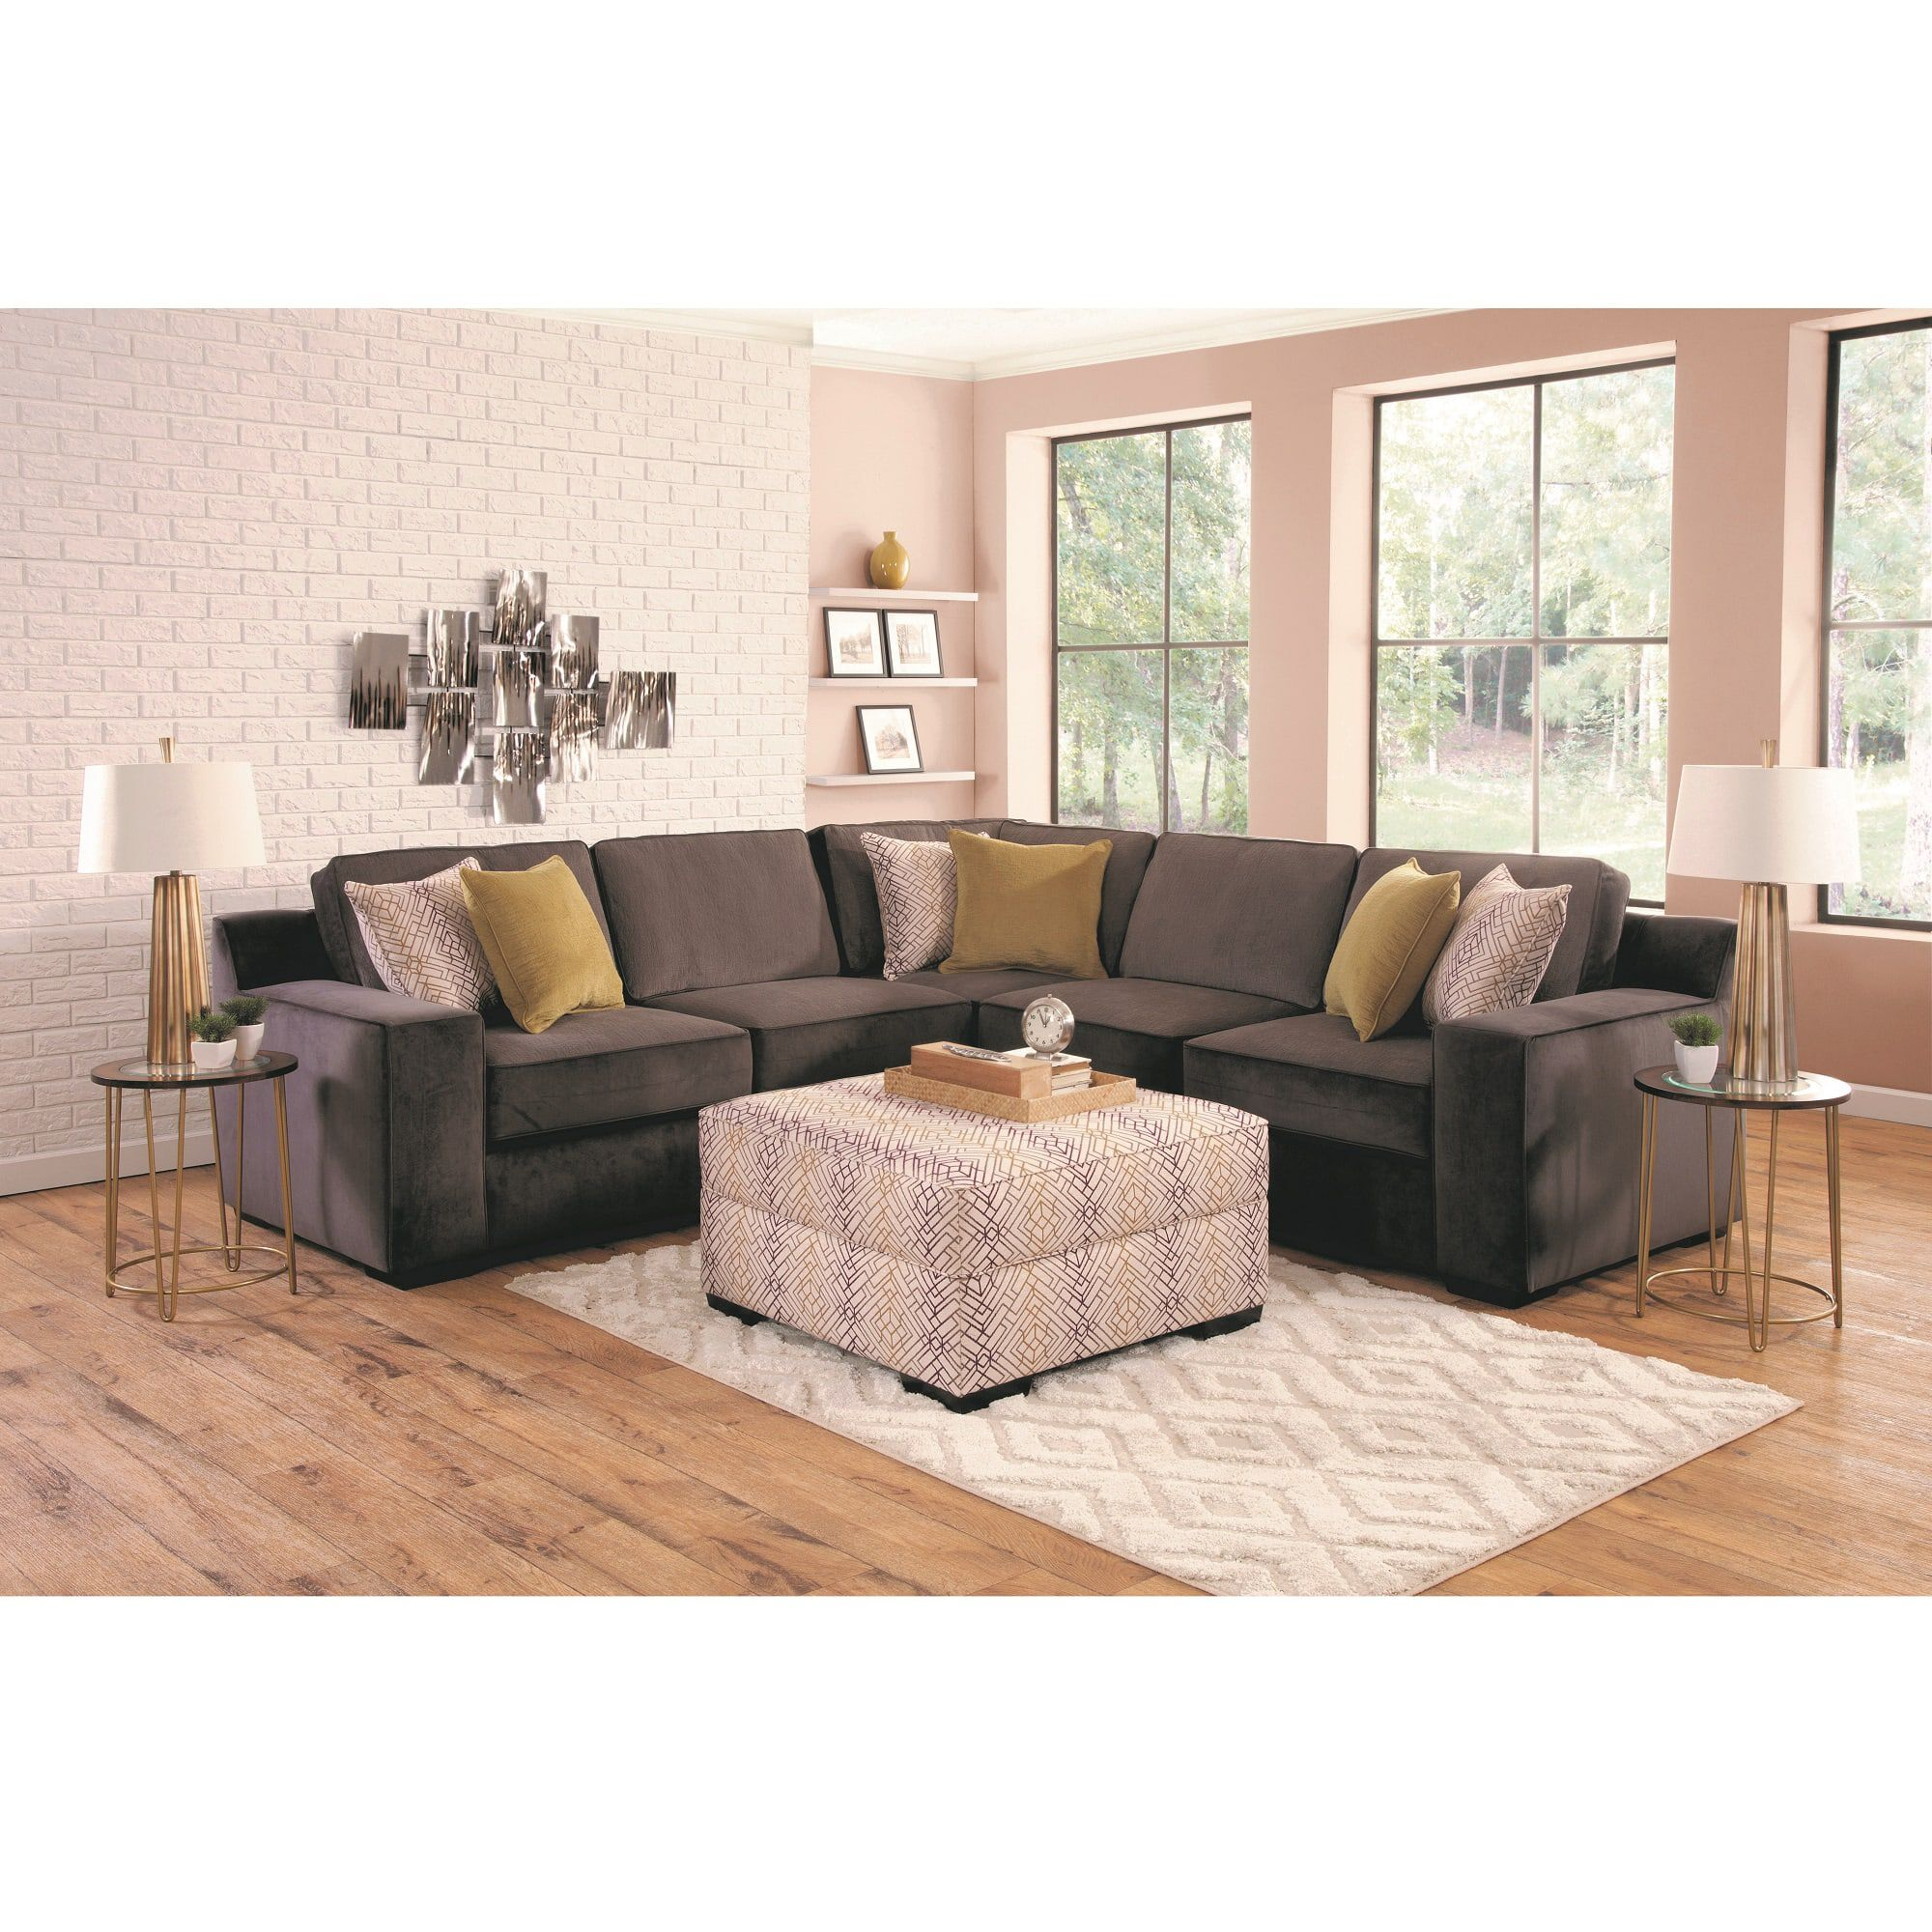 Woodhaven Industries Sectionals 4 Piece Sonja Living Room